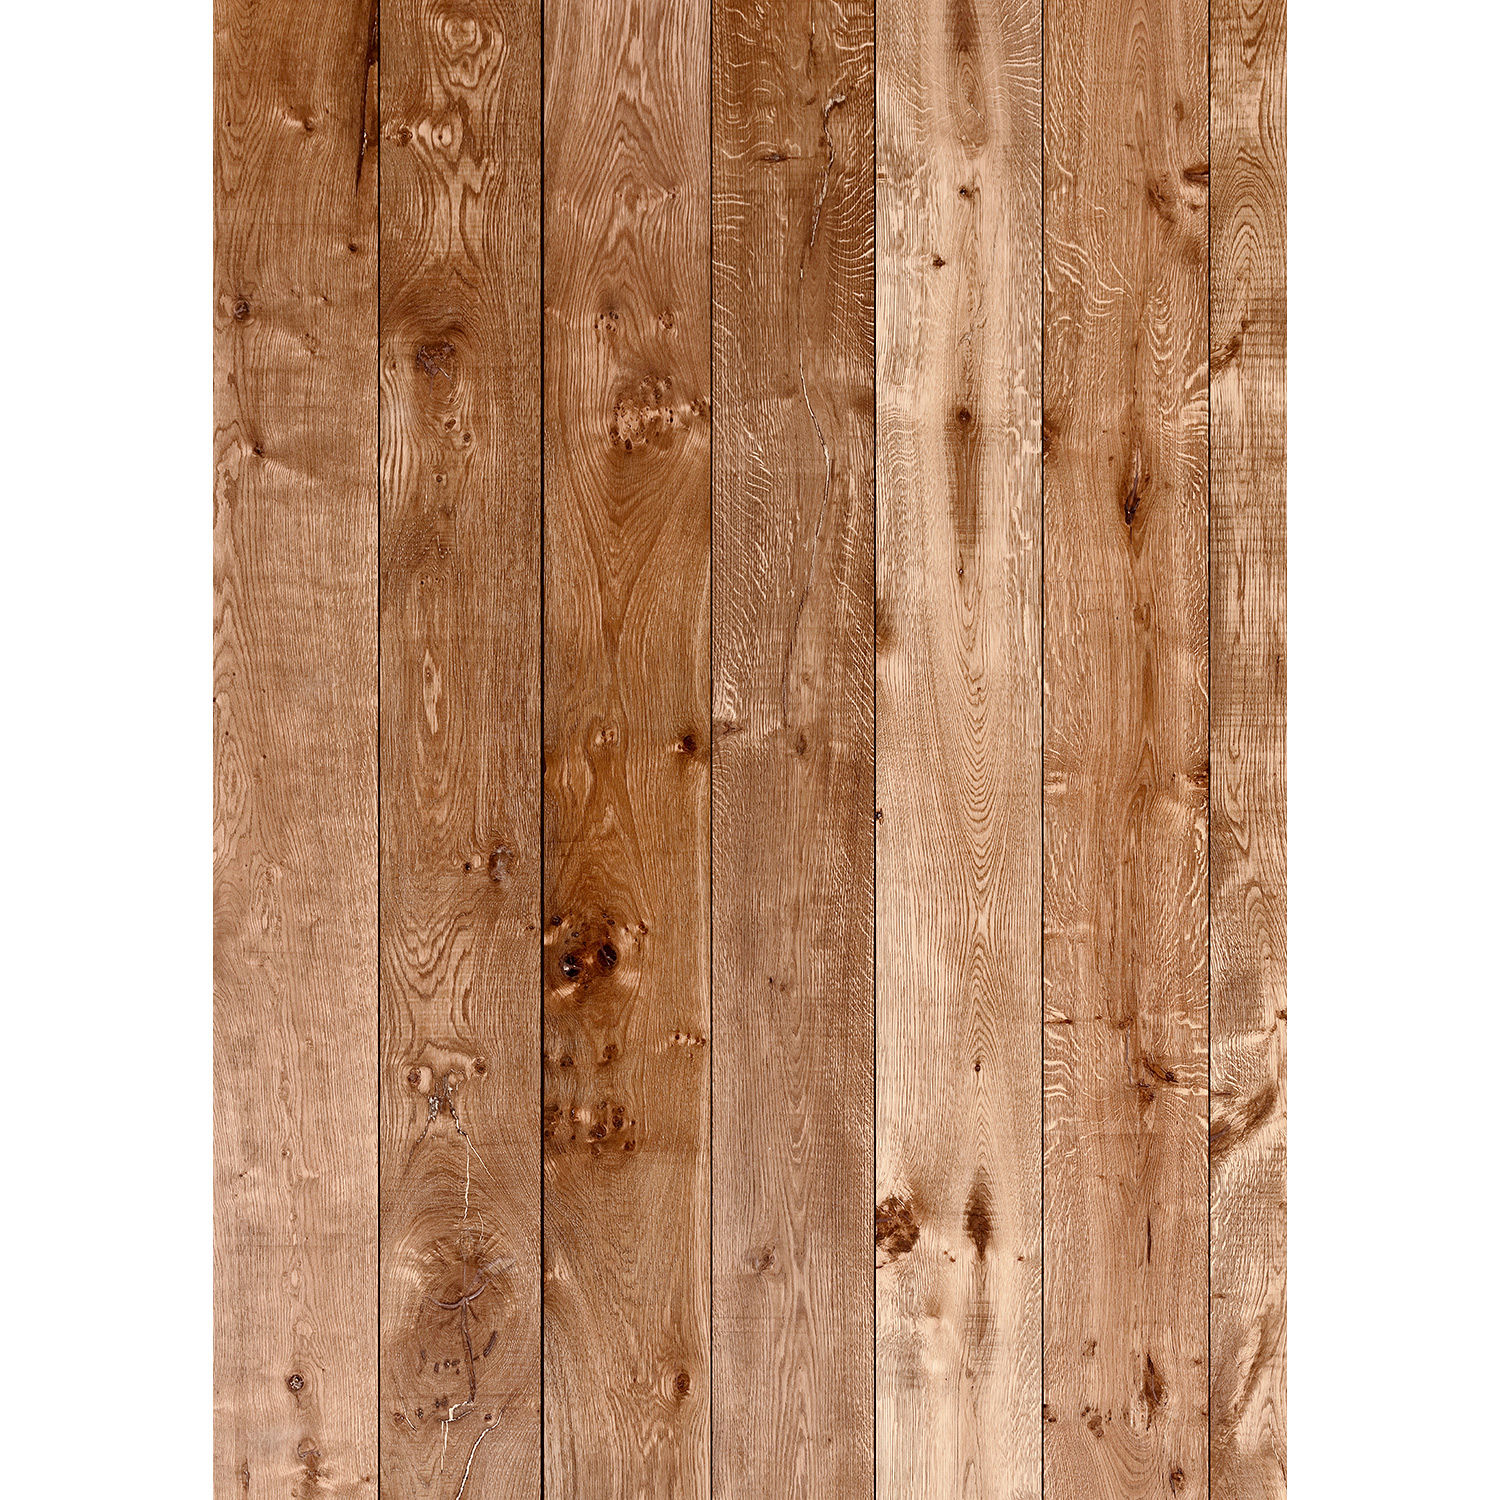 wood pattern planks feel - photo #26